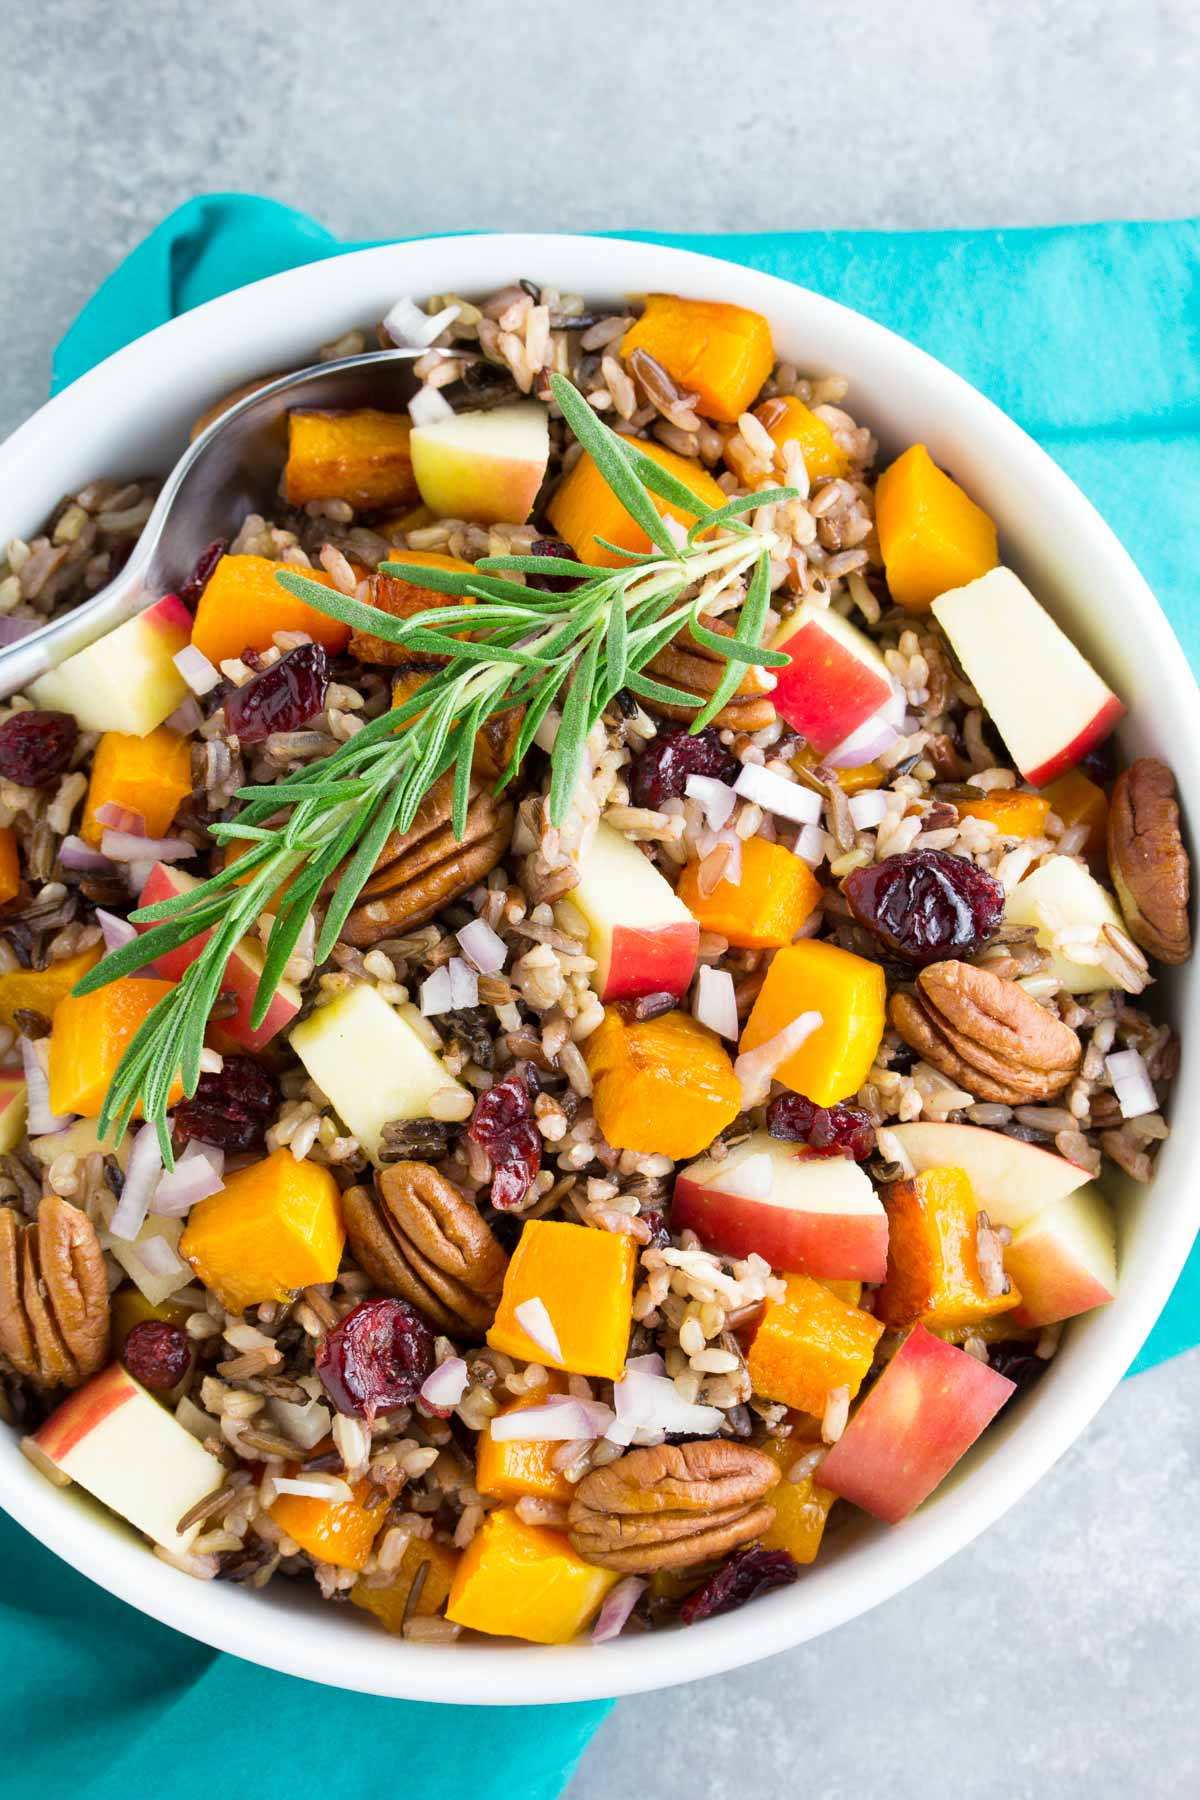 An easy, delicious holiday side dish or make ahead lunch. You will make this Roasted Butternut Squash Wild Rice Salad with Apple, Cranberries and apple cider dressing again and again! | www.kristineskitchenblog.com